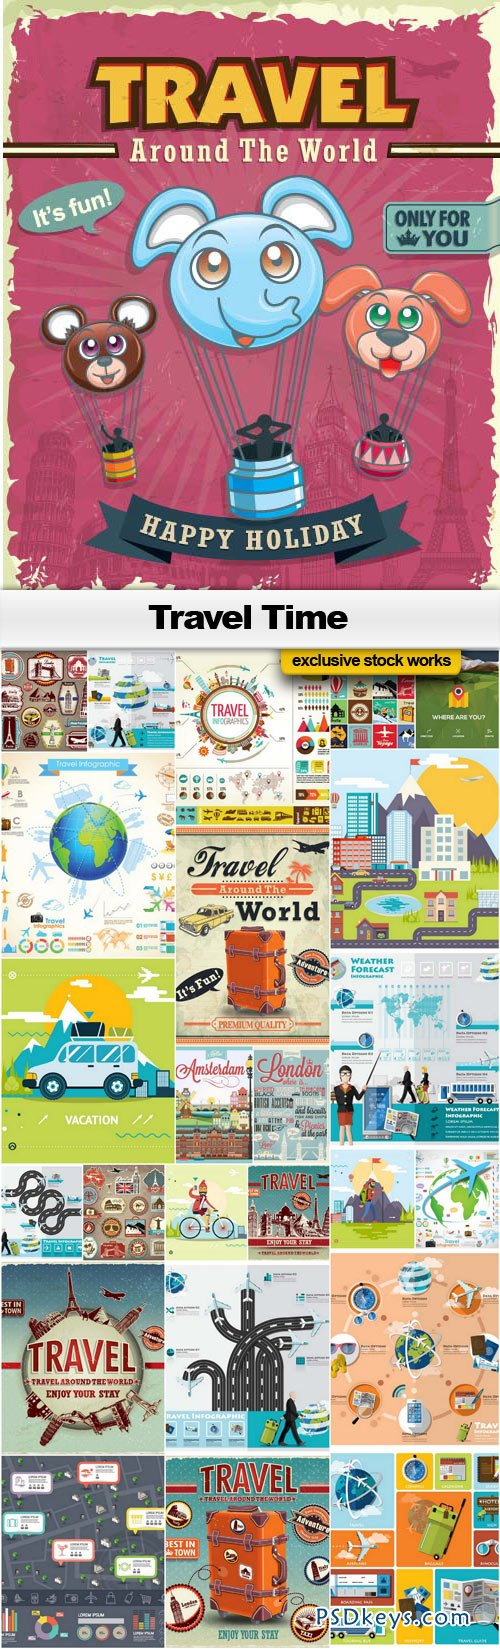 Travel time 25xeps brushes vectors pinterest travel time 25xeps city mapsbrushesvectors gumiabroncs Choice Image